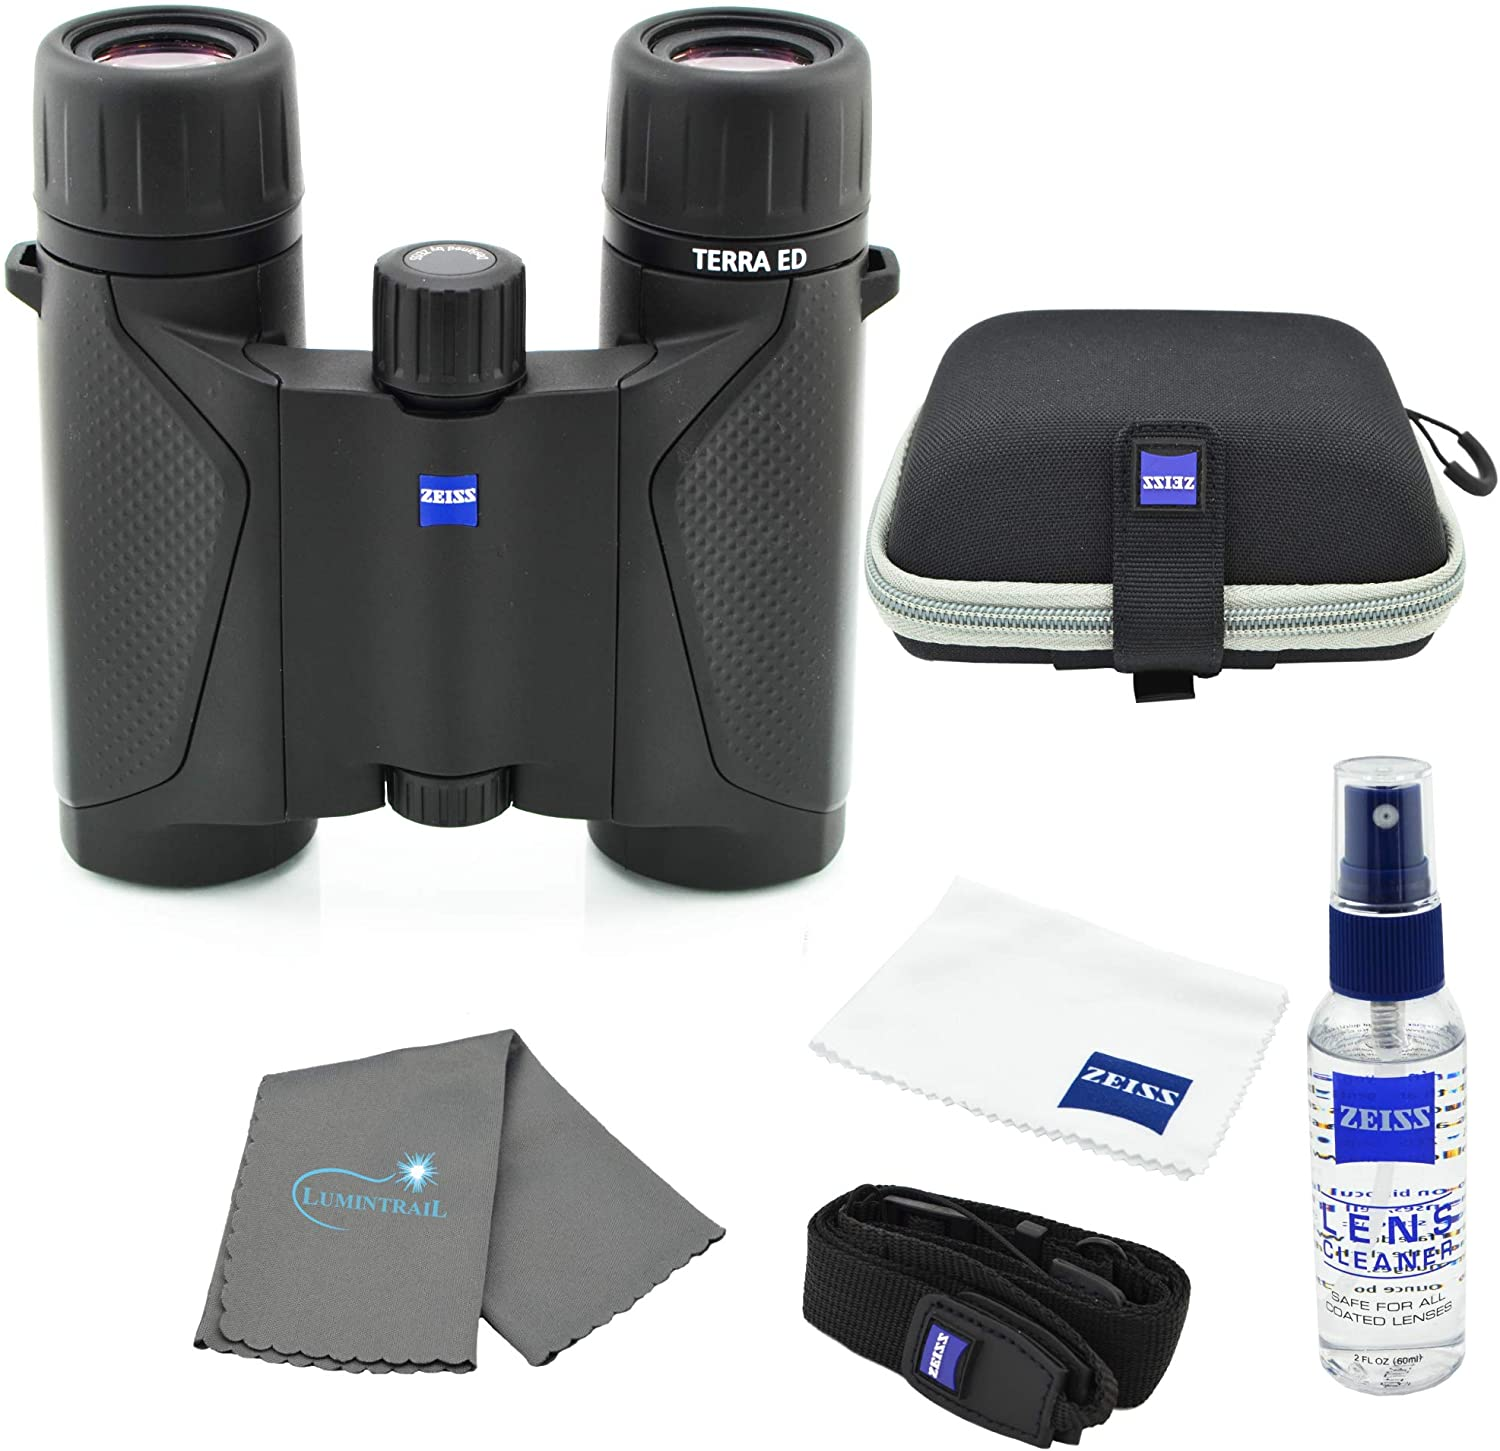 Zeiss 8x25 Terra ED Compact Pocket Z Bundle Binocular with Al sold out. Cheap mail order sales Black